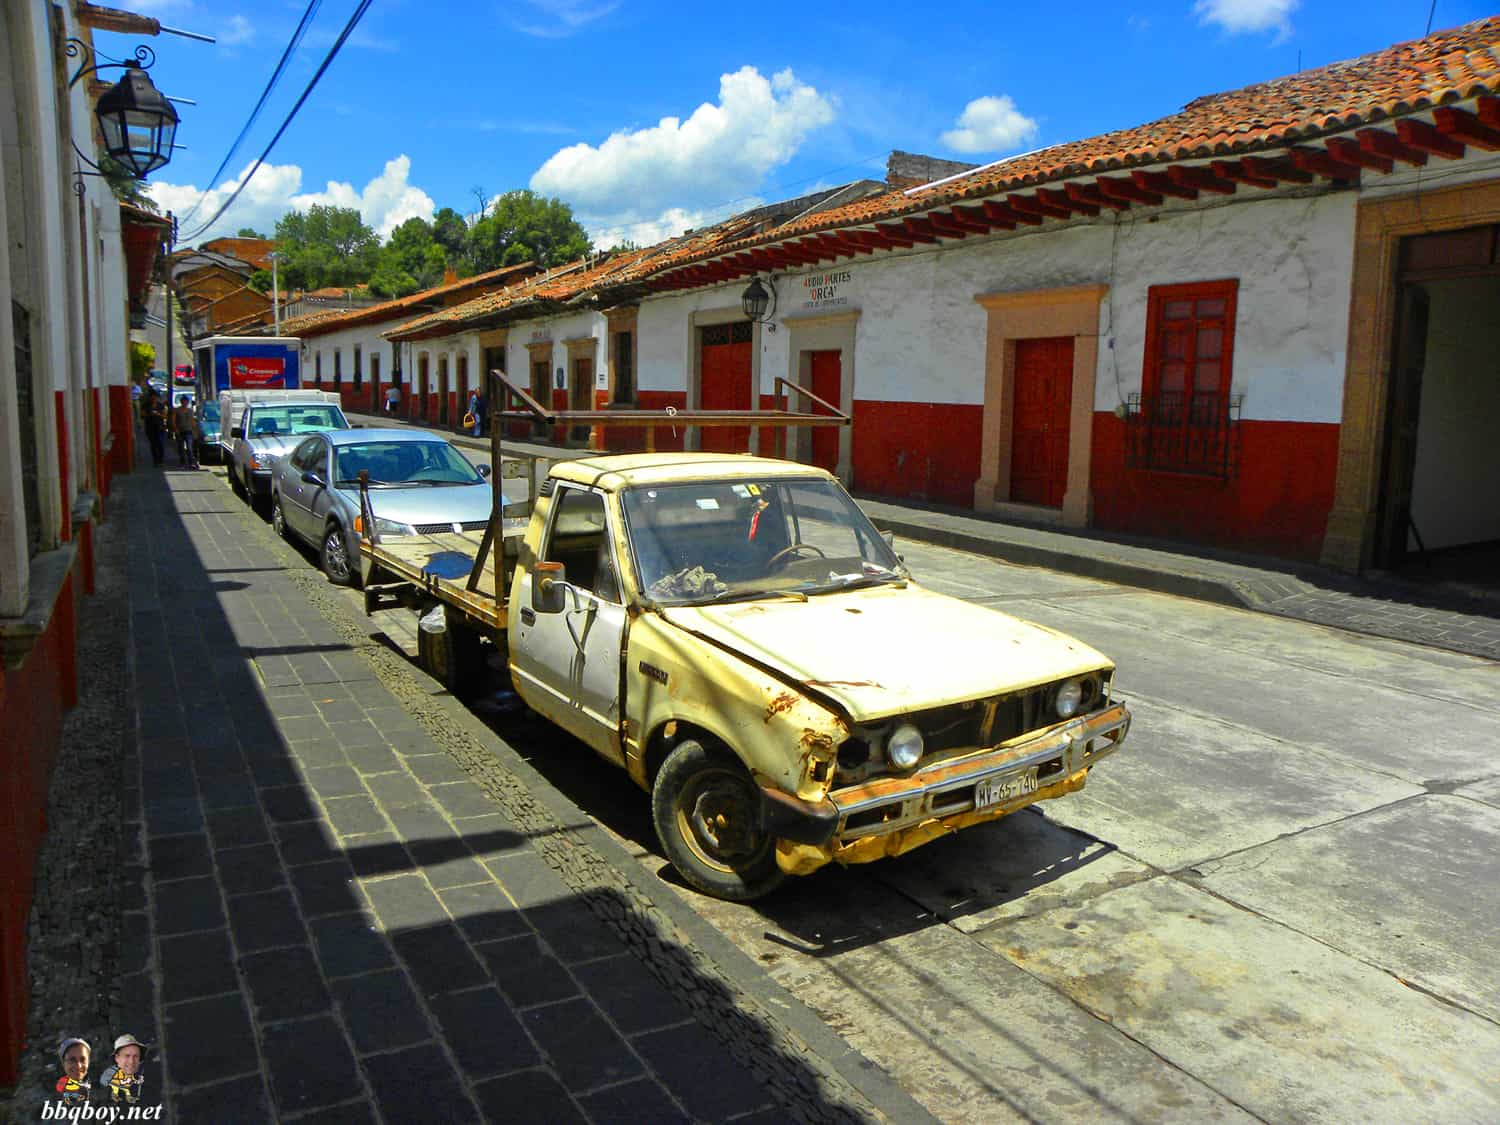 beat up car in Patzcuaro, mexico 2